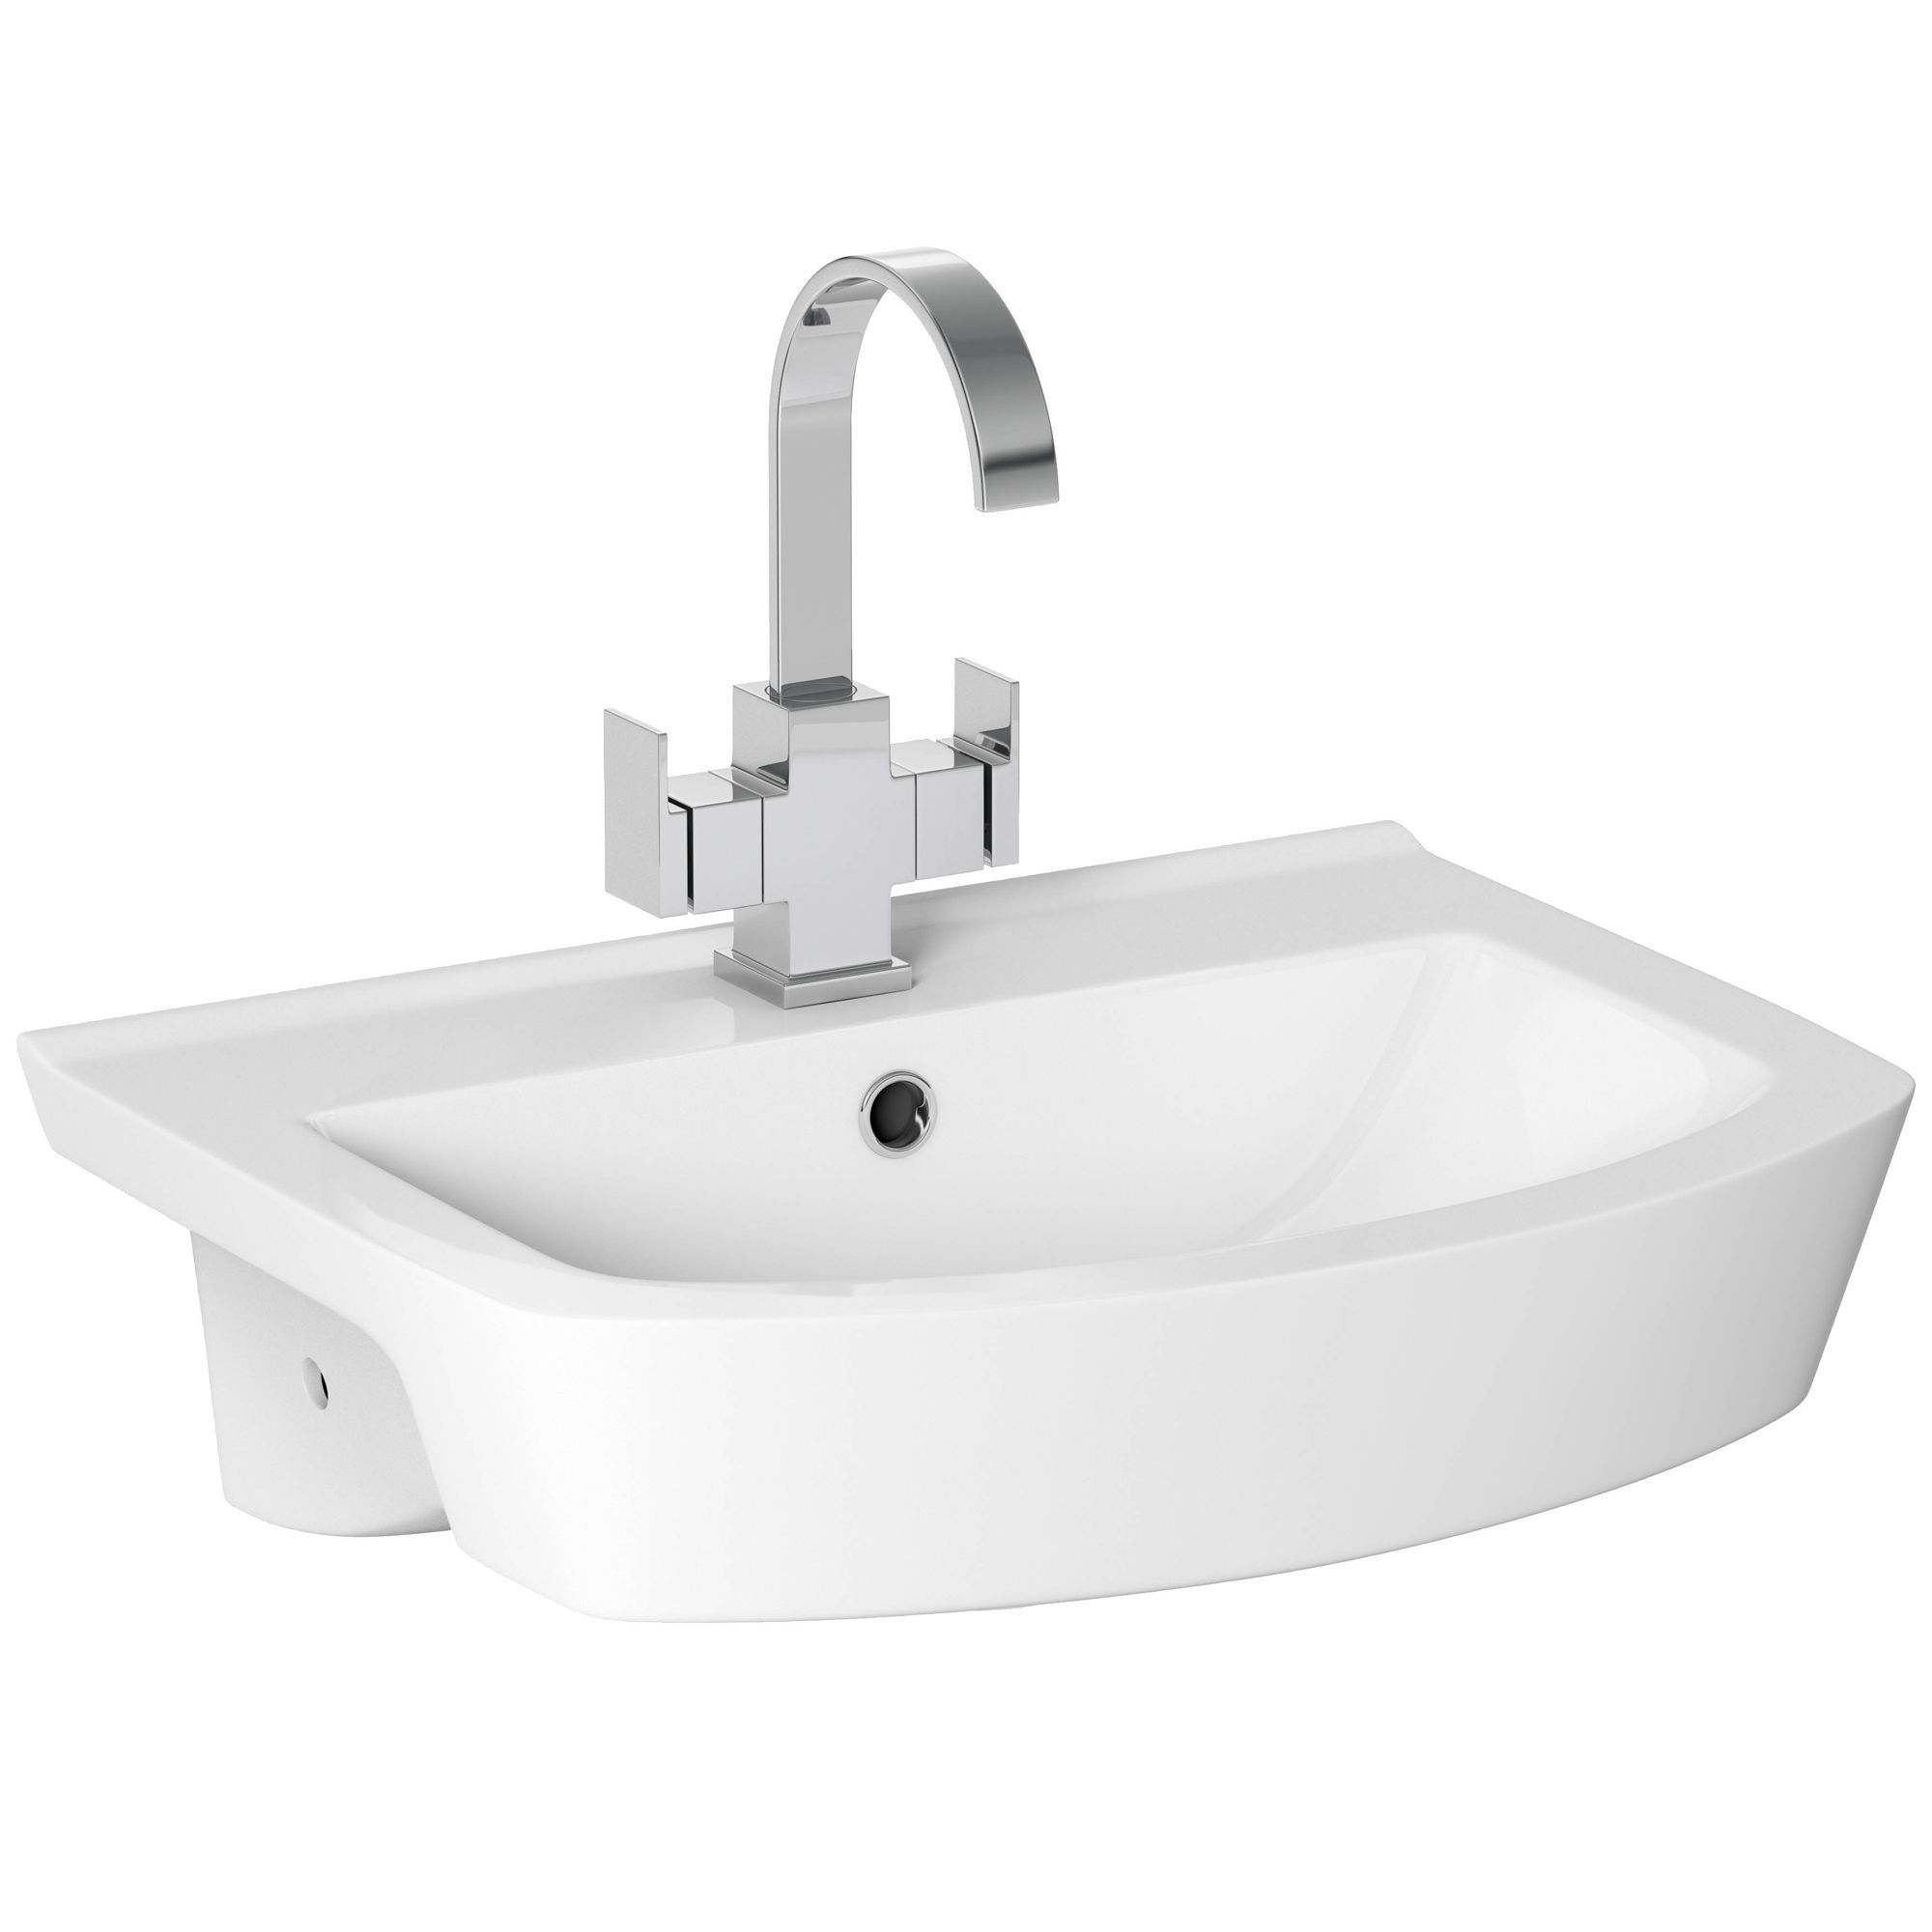 Cooke & Lewis Luciana Semi Recessed Basin Departments